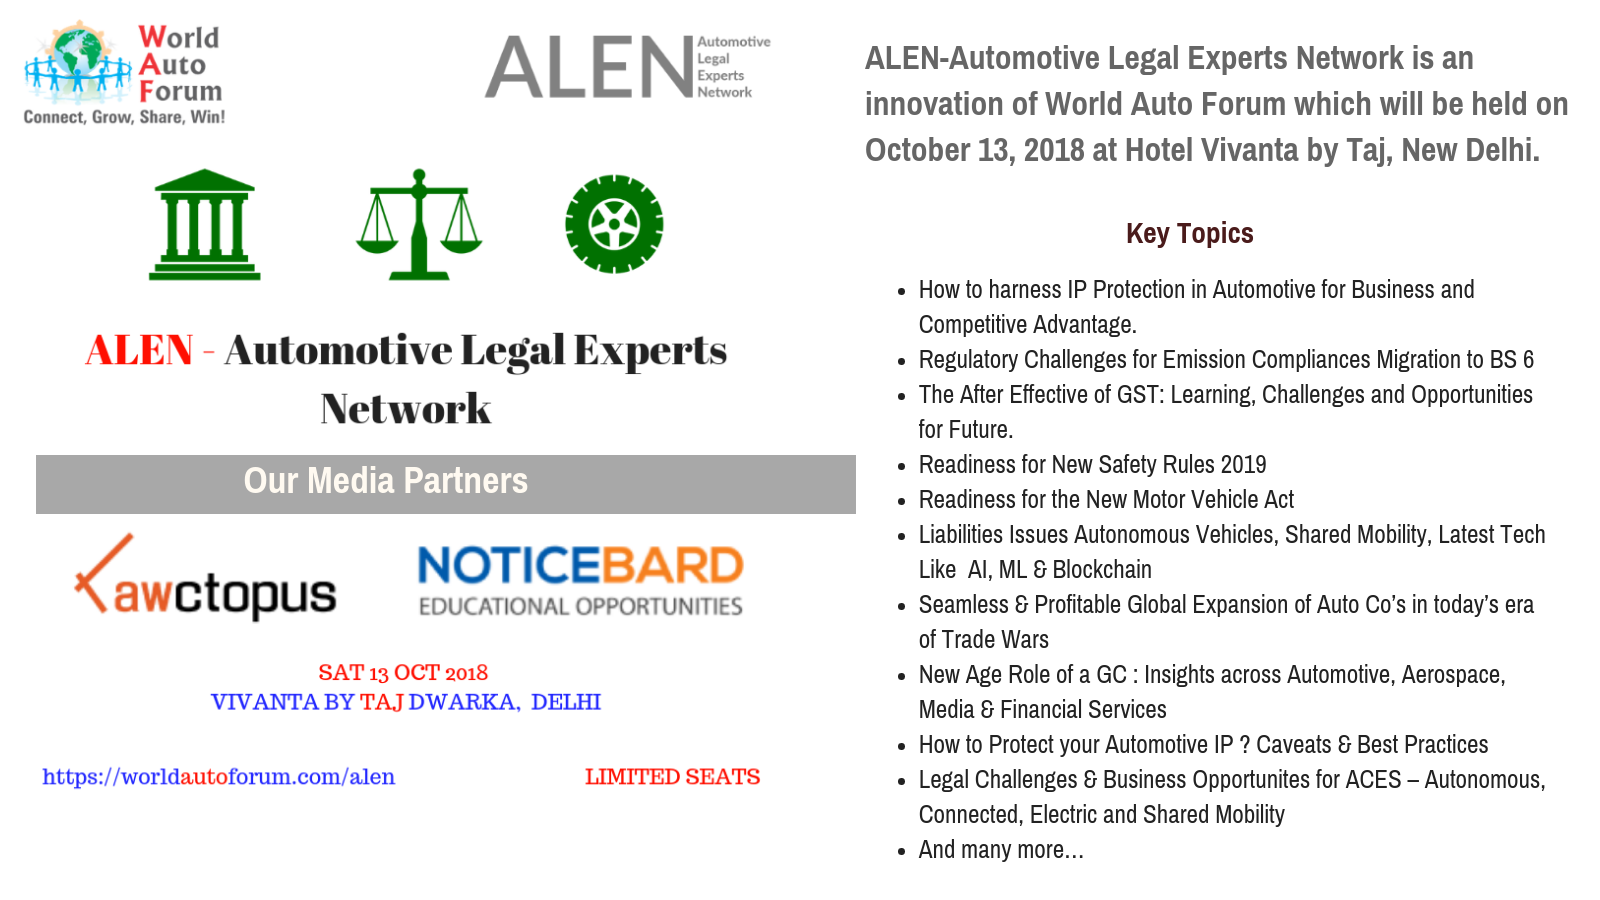 ALEN-Automotive Legal Experts Network